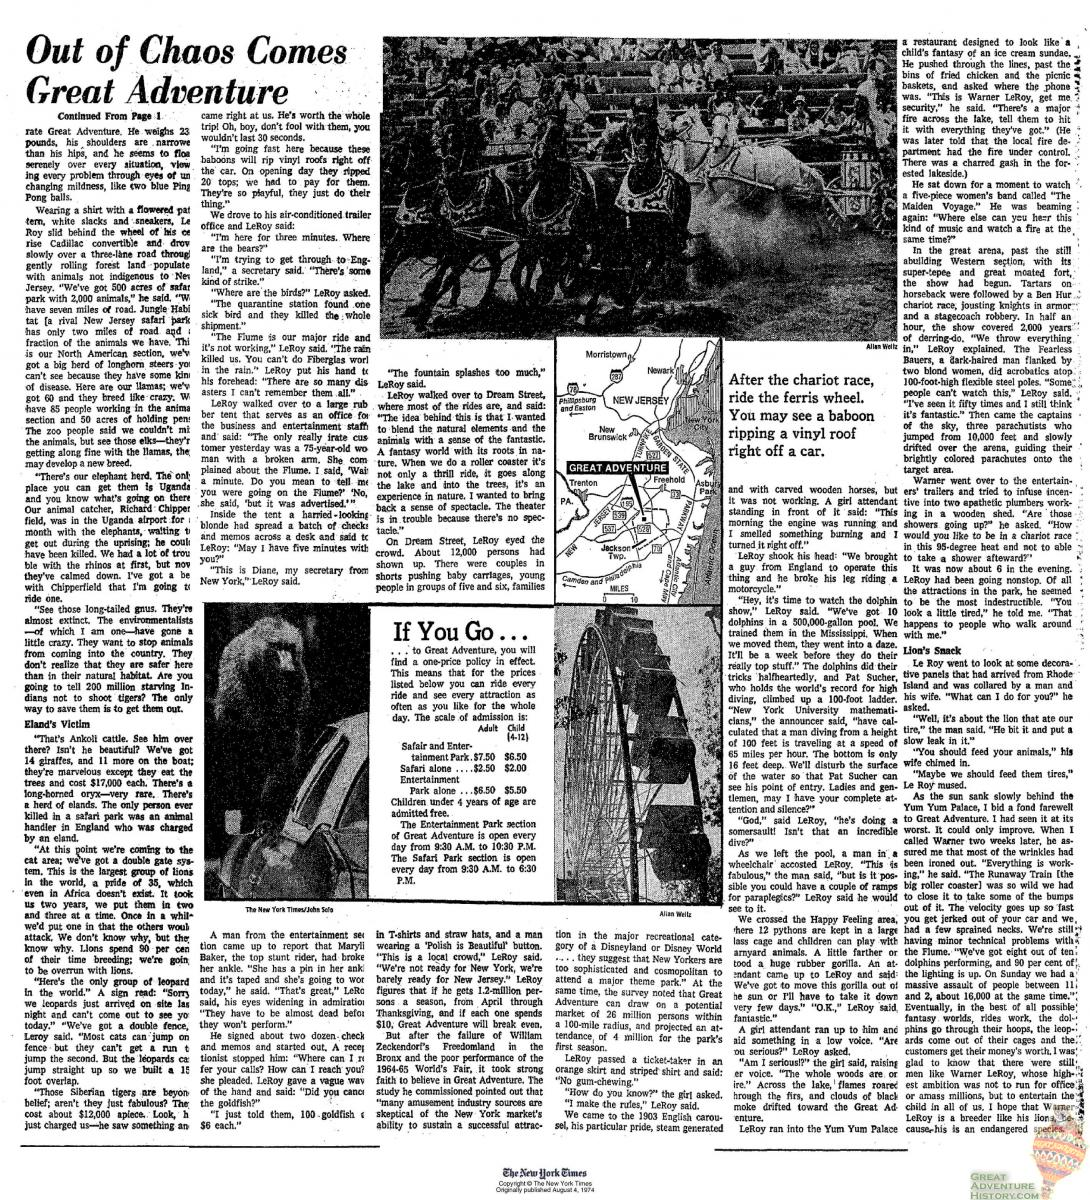 Out of Chaos Pg2 - NY Times Aug 4, 1974